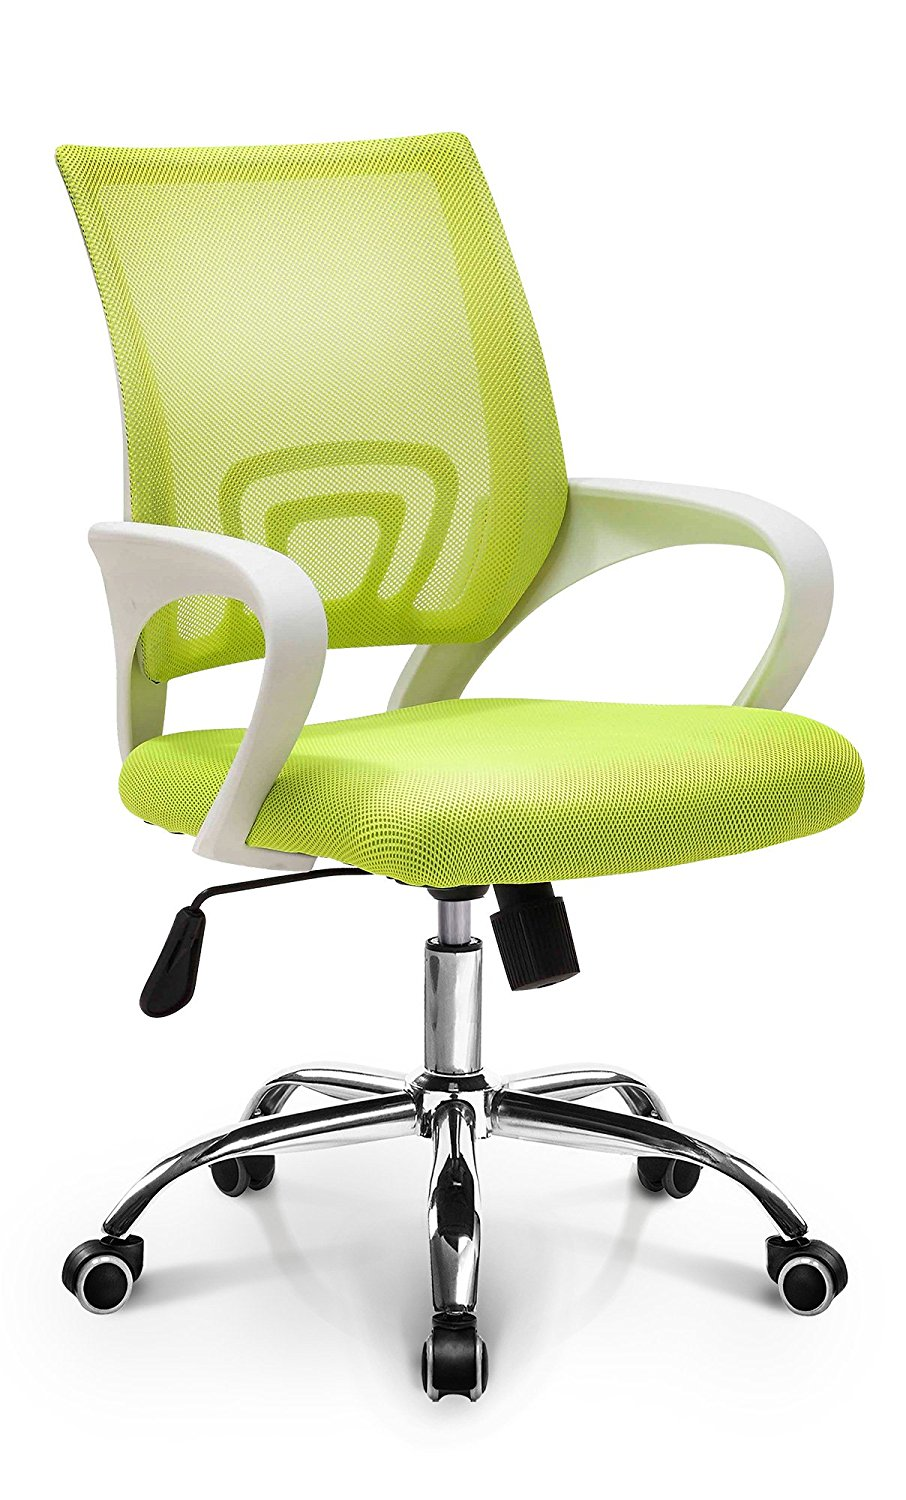 Fashionable Home Office Chair Conference Room Chair Desk Task Computer Mesh Chair